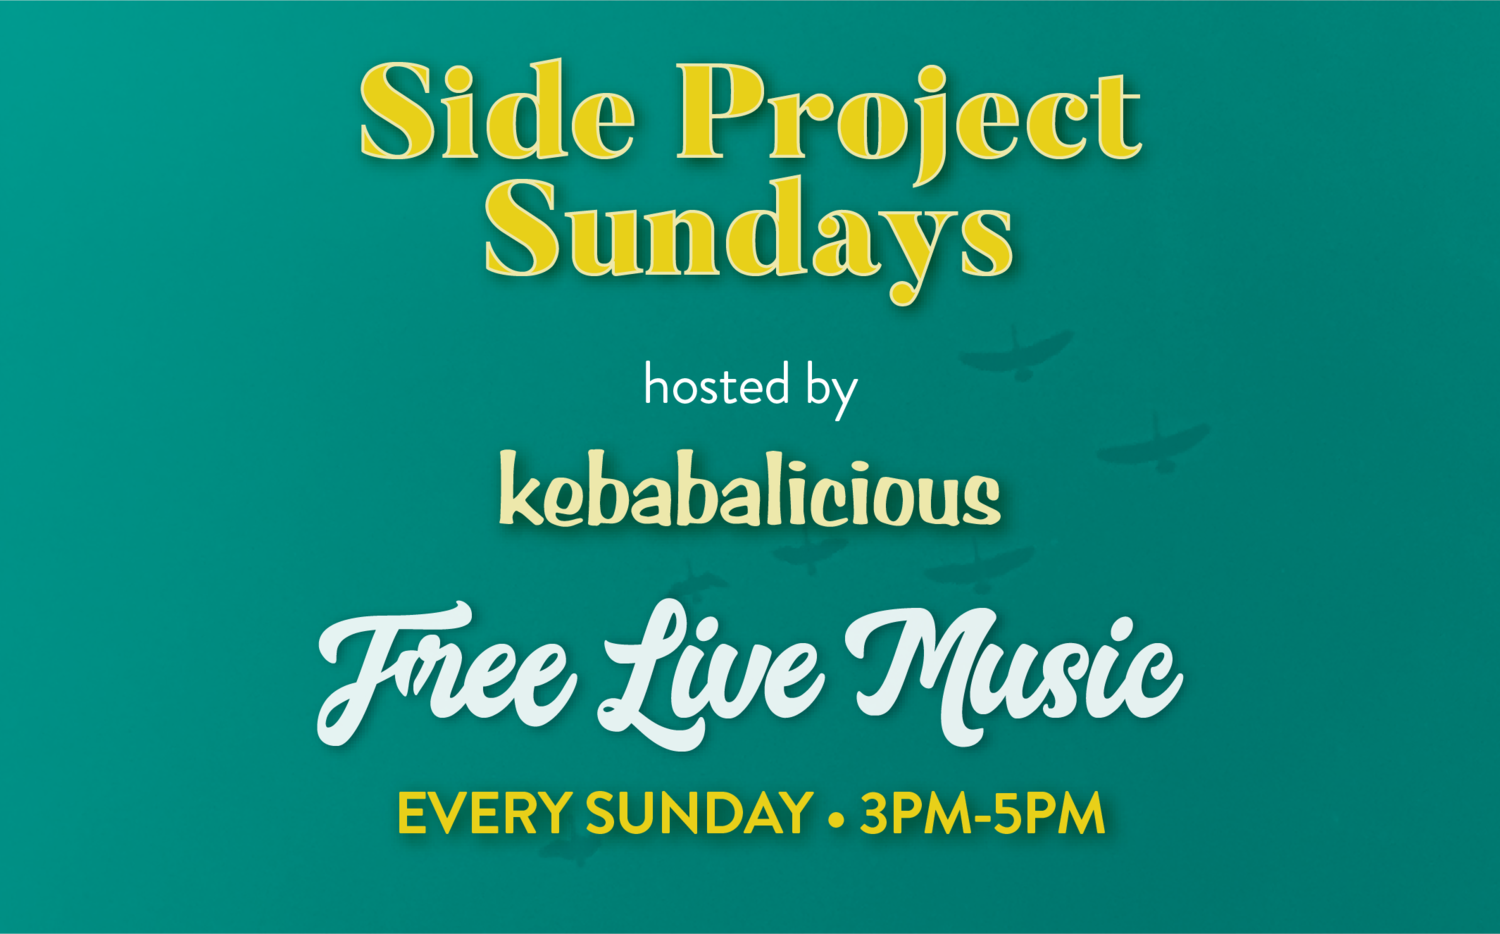 Side Project Sundays